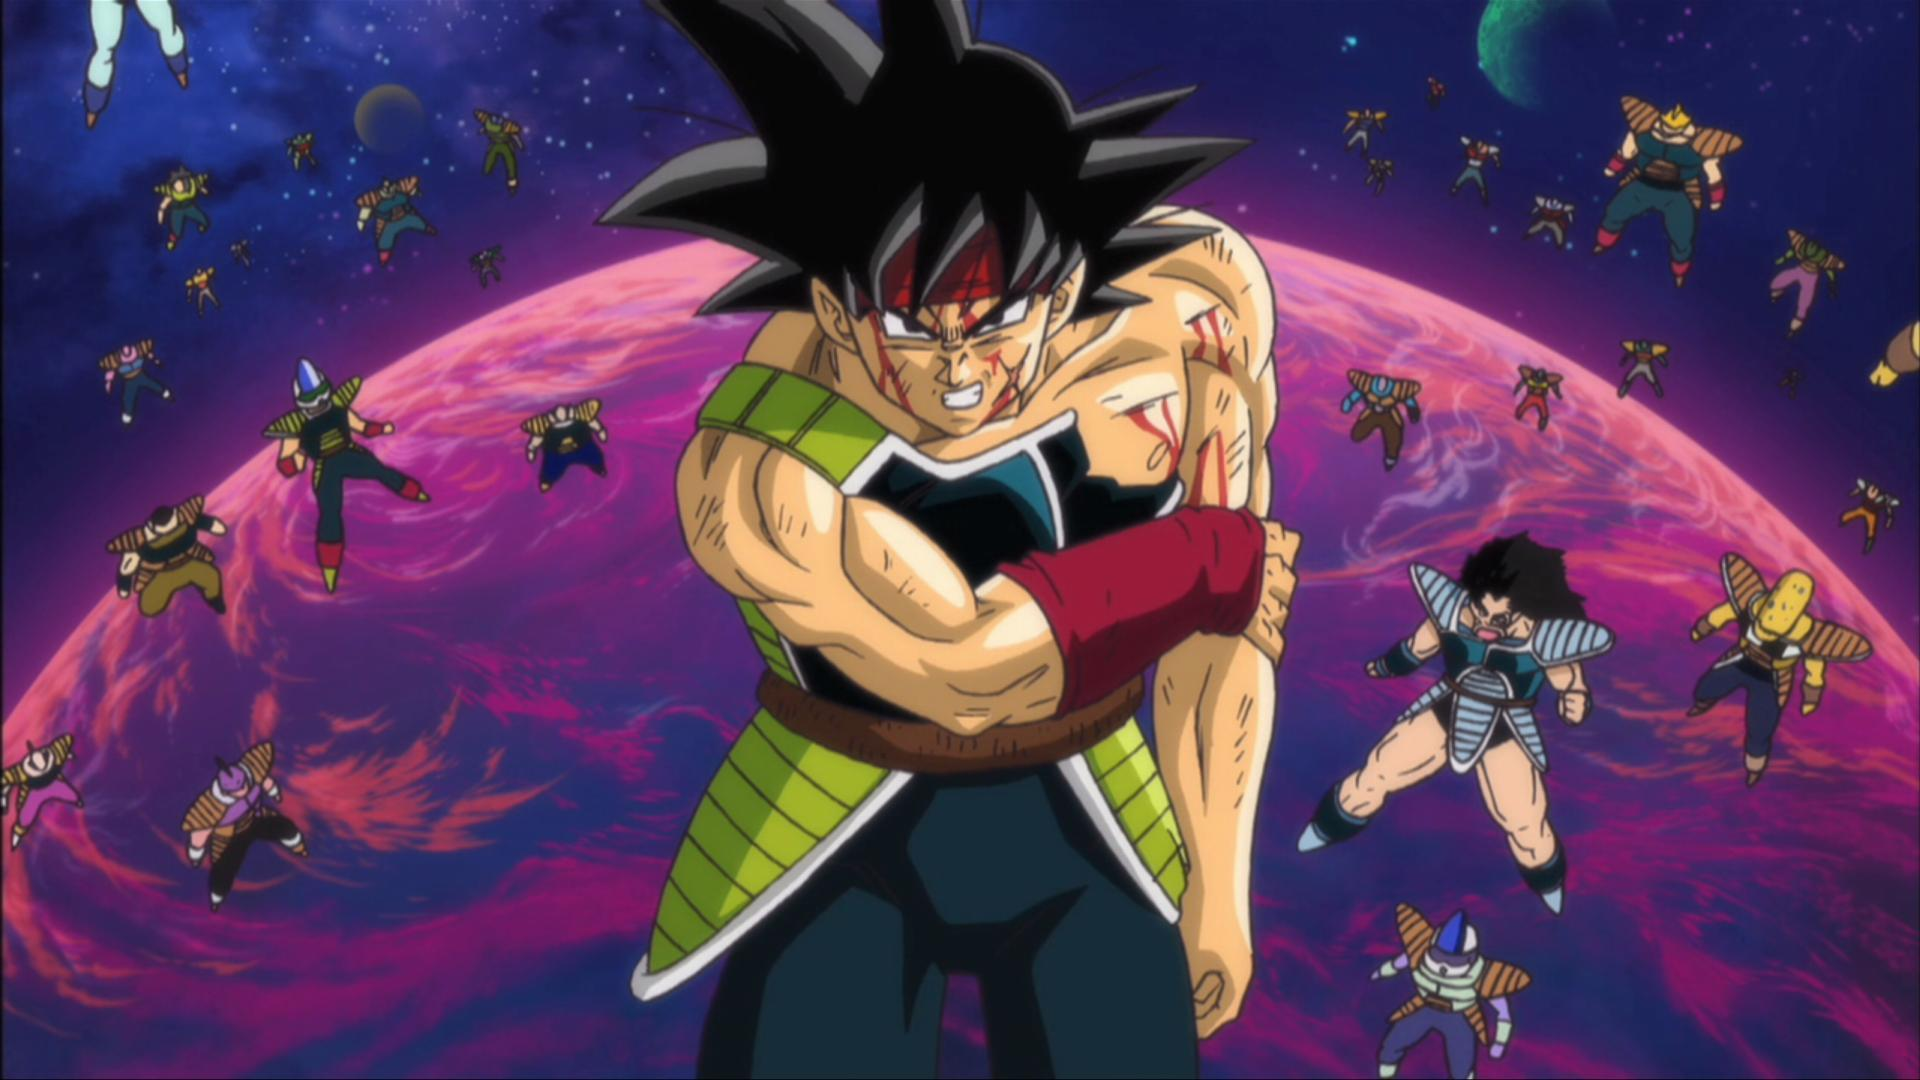 Bardock Wallpapers Top Free Bardock Backgrounds